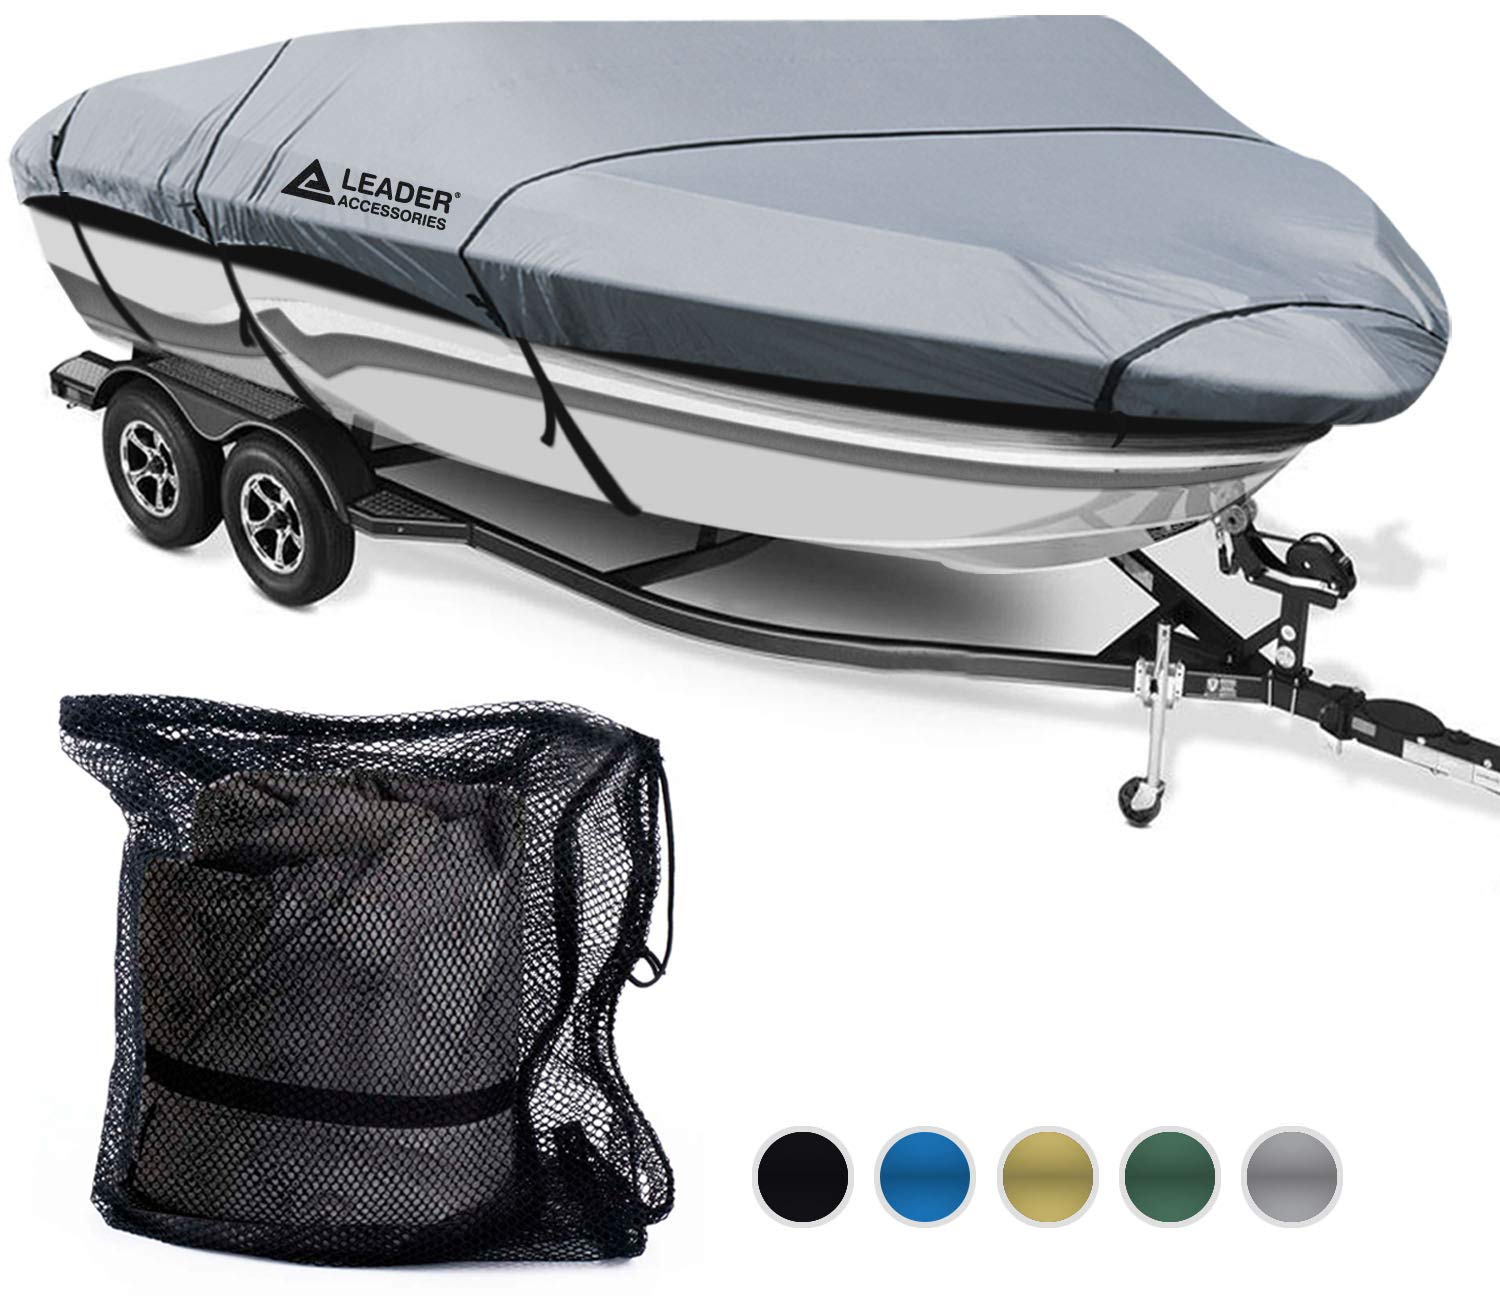 Leader Accessories 600D Polyester 5 Colors Waterproof Trailerable Runabout Boat Cover Fit V-Hull Tri-Hull Fishing Ski Pro-Style Bass Boats,Full Size (16'-18.5'L Beam Width up to 94'', Grey) by Leader Accessories